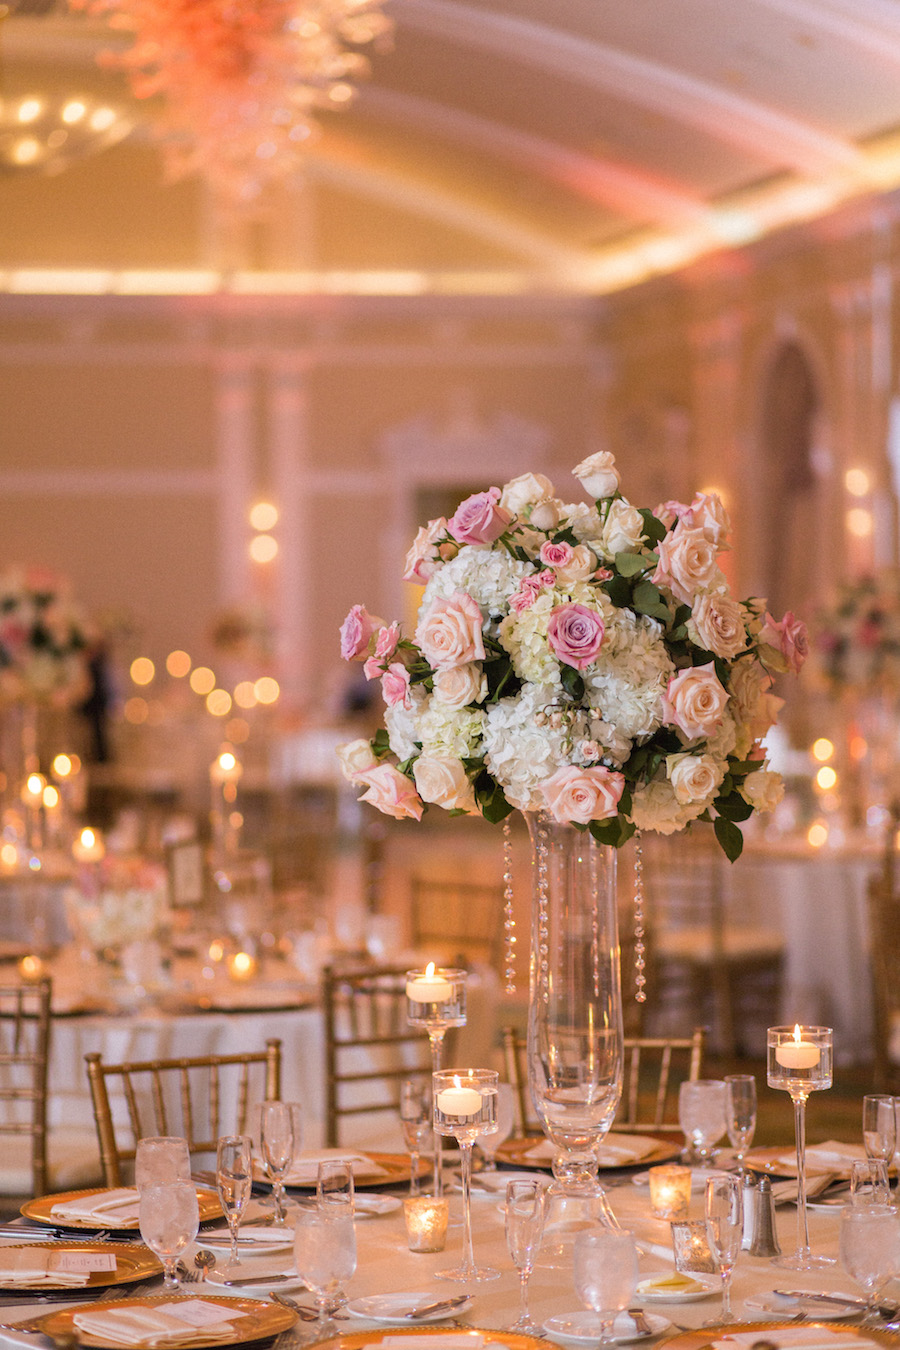 Wedding Reception Decor | Tall Rose Centerpieces with Glass Vases |Exquisite Events Tampa Bay Wedding and Event Planner